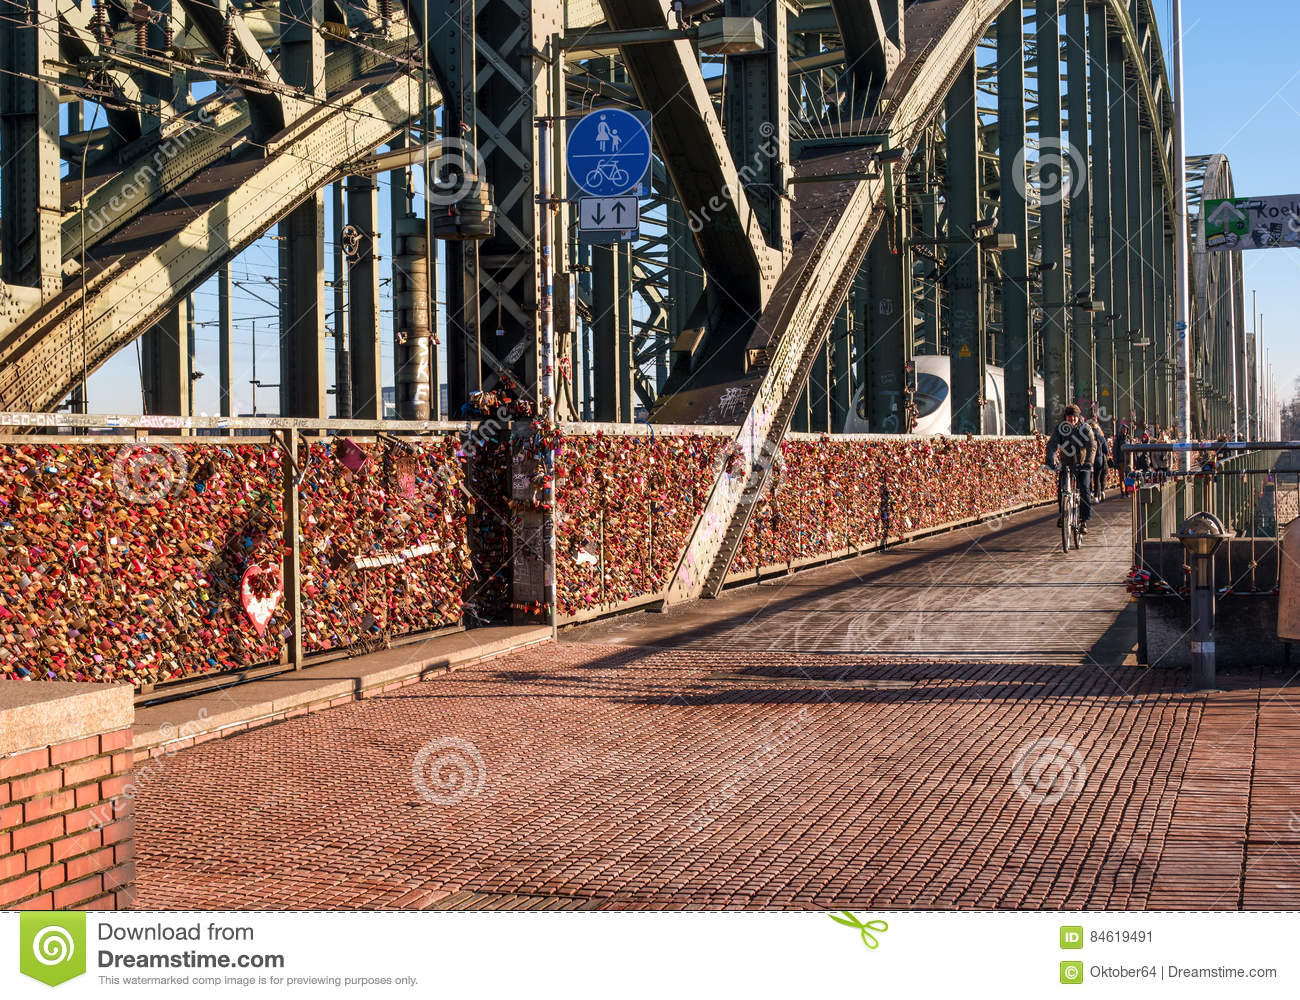 Cologne, Germany - January 19, 2017: Locks of love on the fence of the Hohenzollern Bridge.